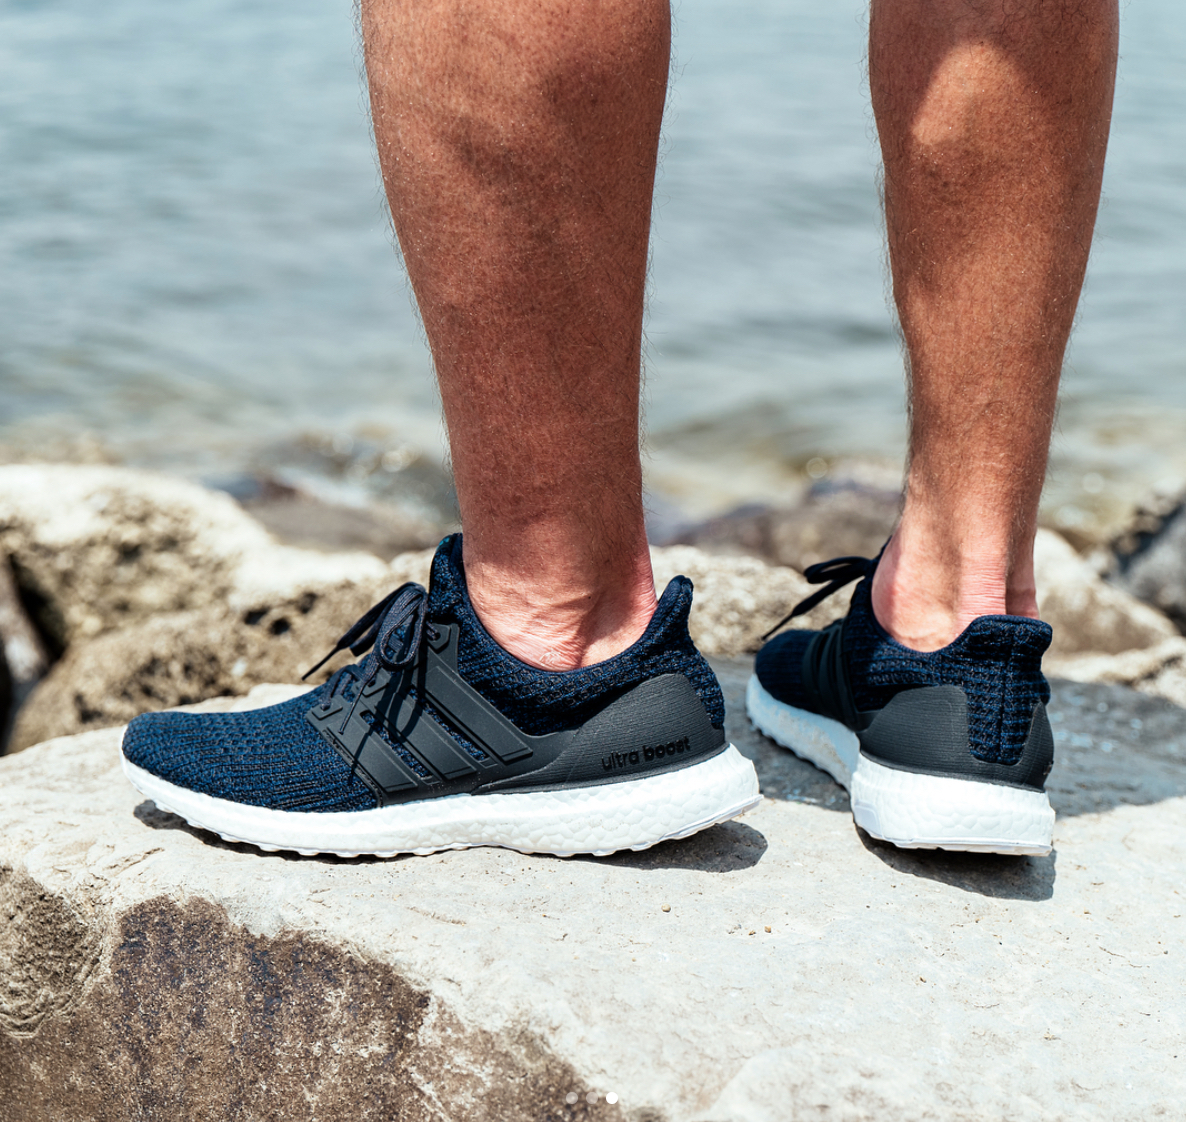 official photos ea539 01f12 The adidas Ultra Boost 4.0 Parley in 'Deep Ocean Blue ...